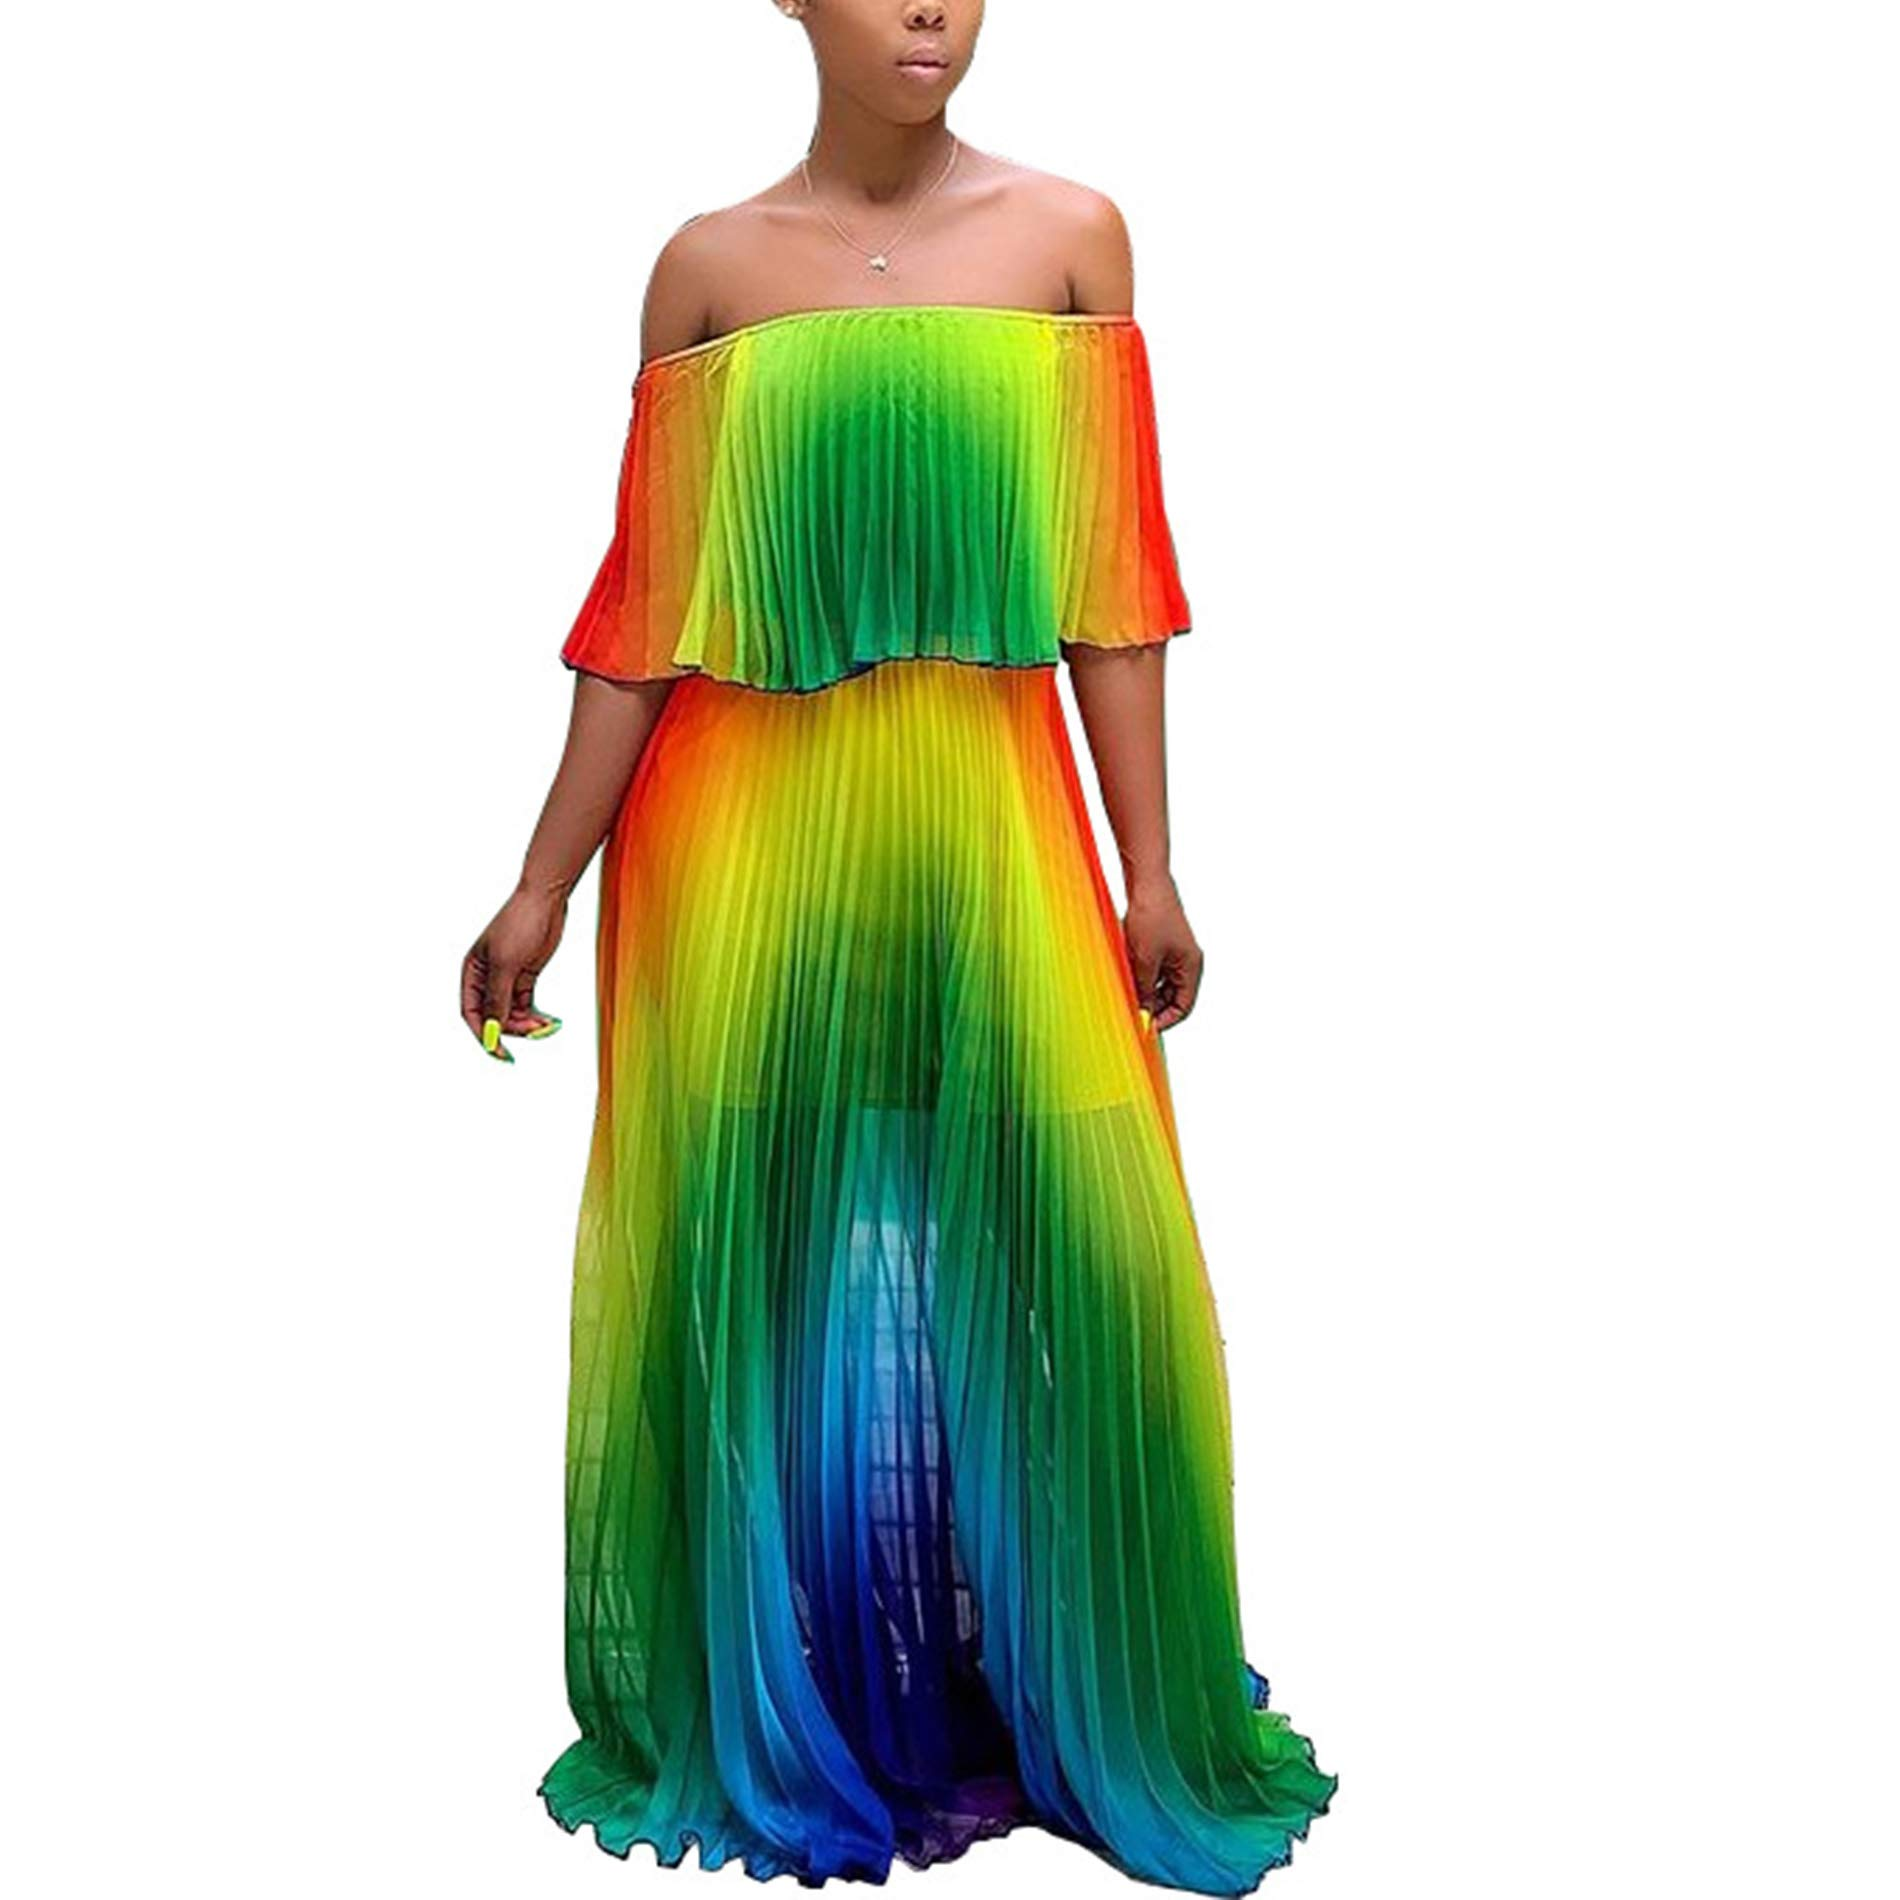 Available at Amazon: IyMoo Women's Sexy Chiffon Sundress Off Shoulder Ombre Tie Dye Pleated Skirts Long Boho Beach Maxi Dress